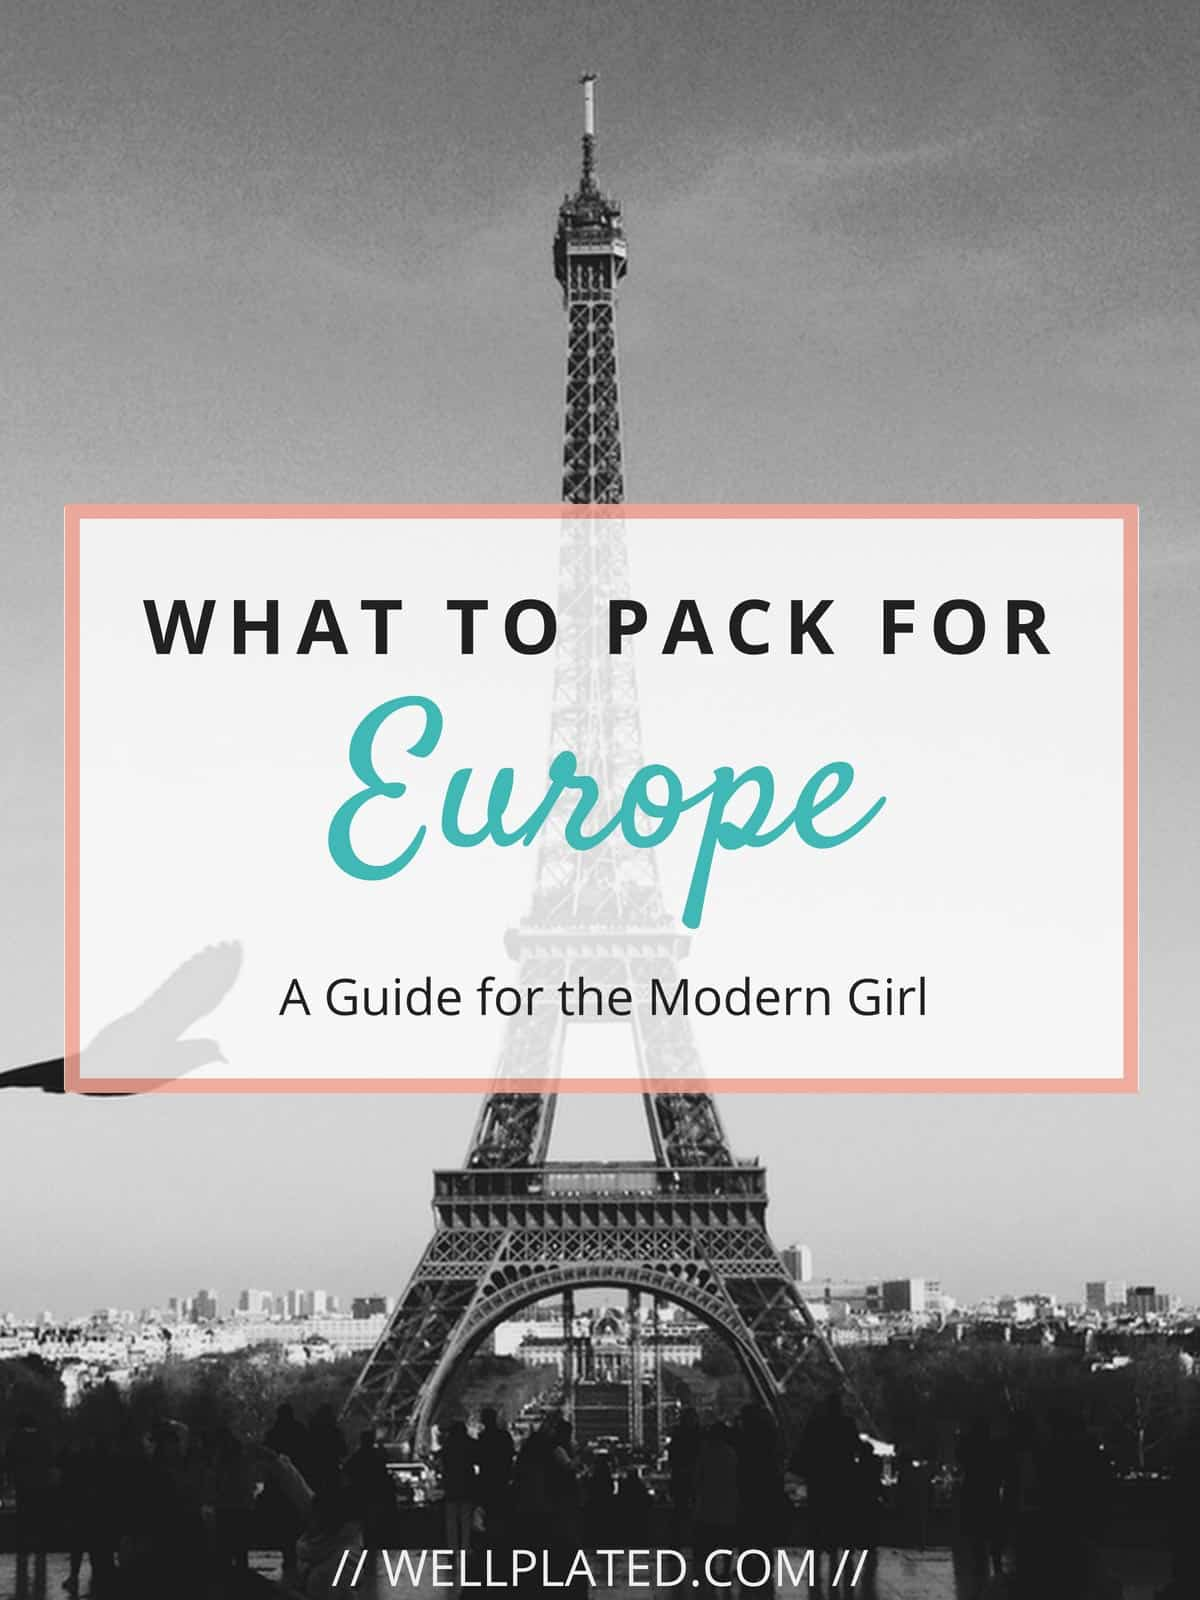 What to Pack for Europe - Including essential electronics, how to plan what to wear, what to bring on a long plane ride, and more! Whether planning what to bring on a 10 day Europe trip, a 2 week Europe trip, or longer, this guide has all of the information you need for how to pack abroad. #wellplated #europe #packing #travel